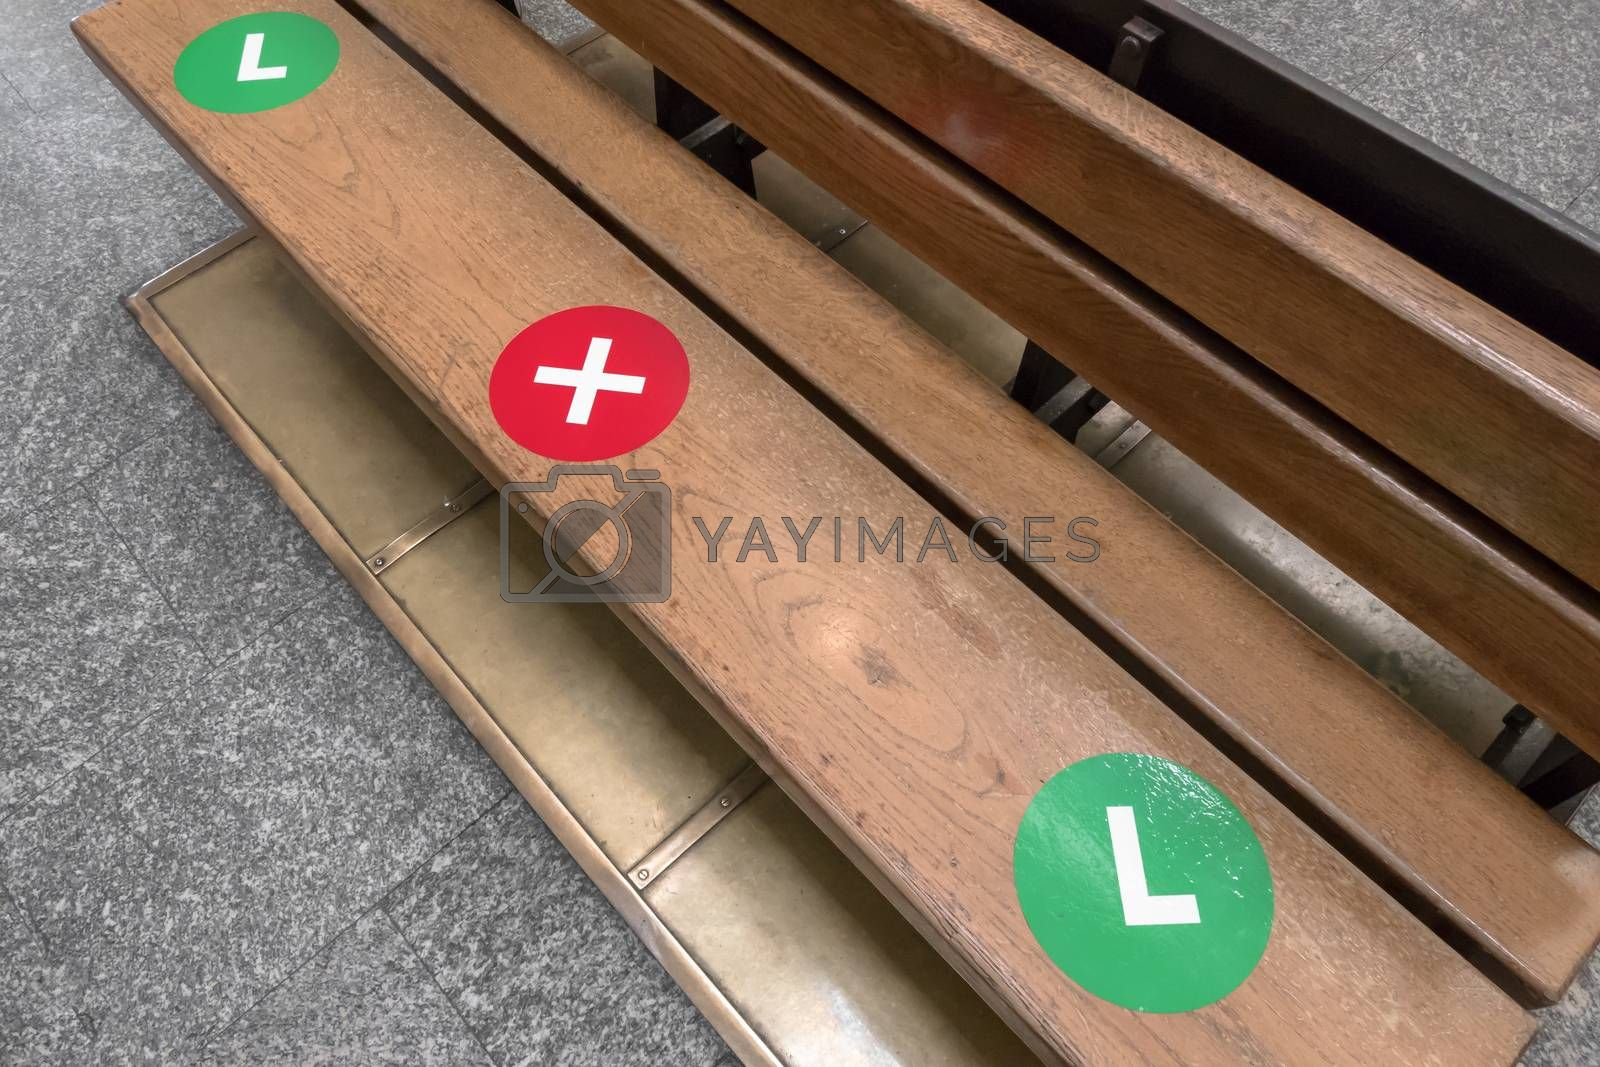 The green dot stickers are being placed on wooden park chair to show people where they can sit while maintaining social distancing. The red color to show people where don't sit. Safety for pandemic covid.